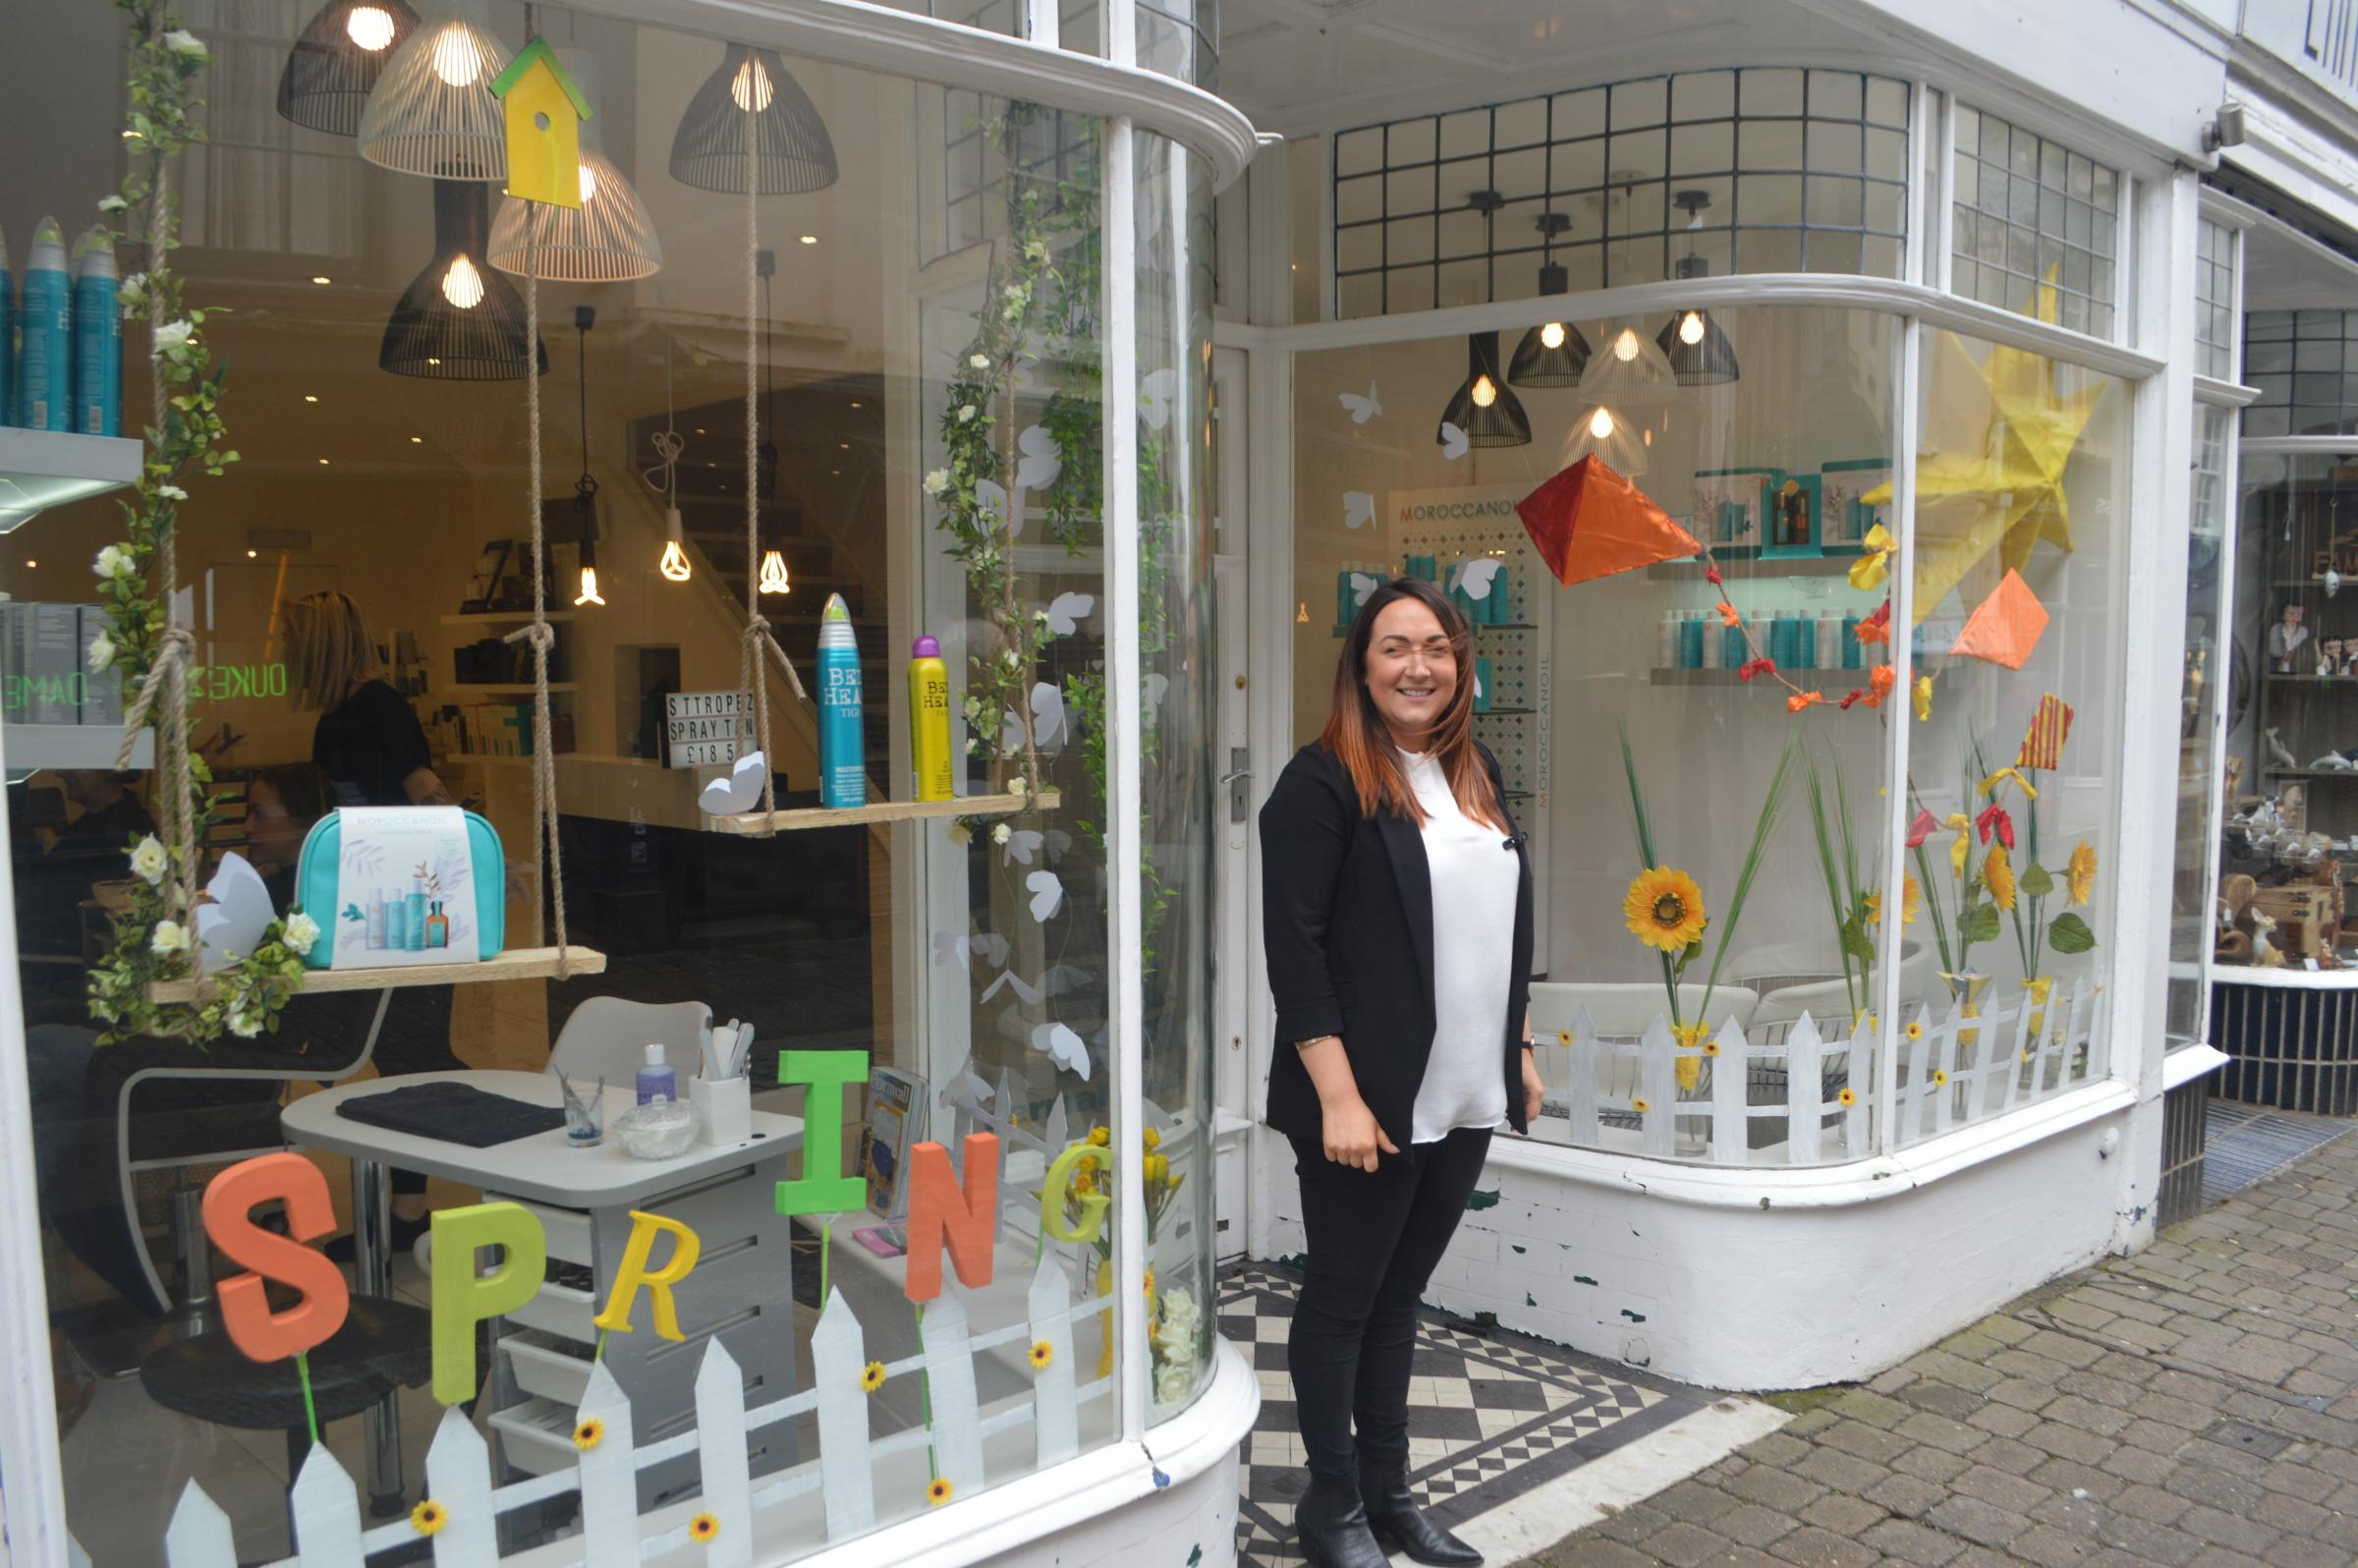 Falmouth Spring Festival window contest winners announced